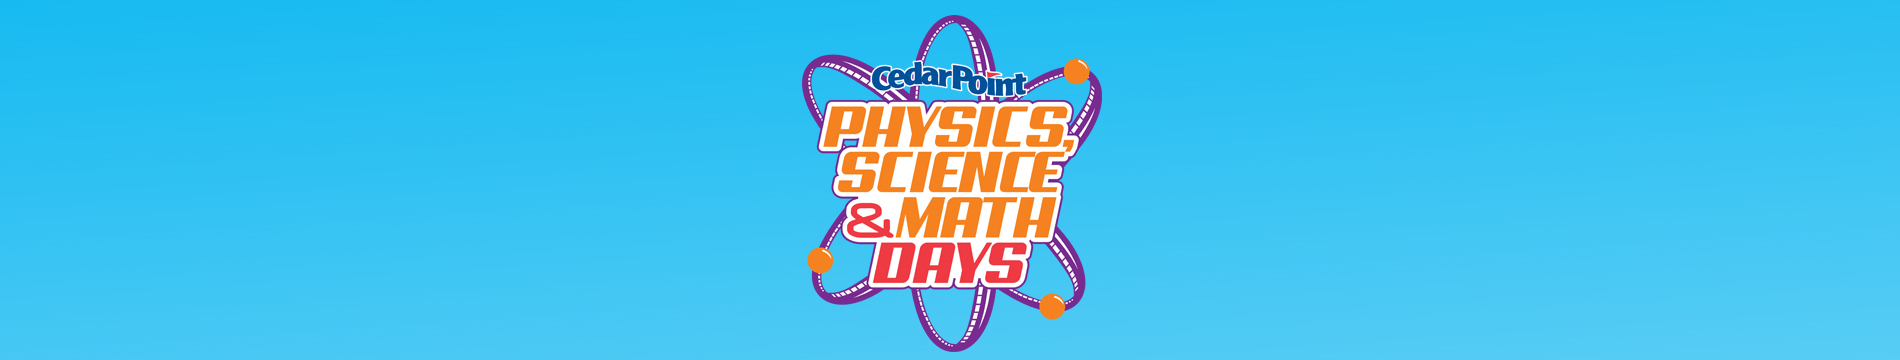 Physics, Science & Math Week at Cedar Point